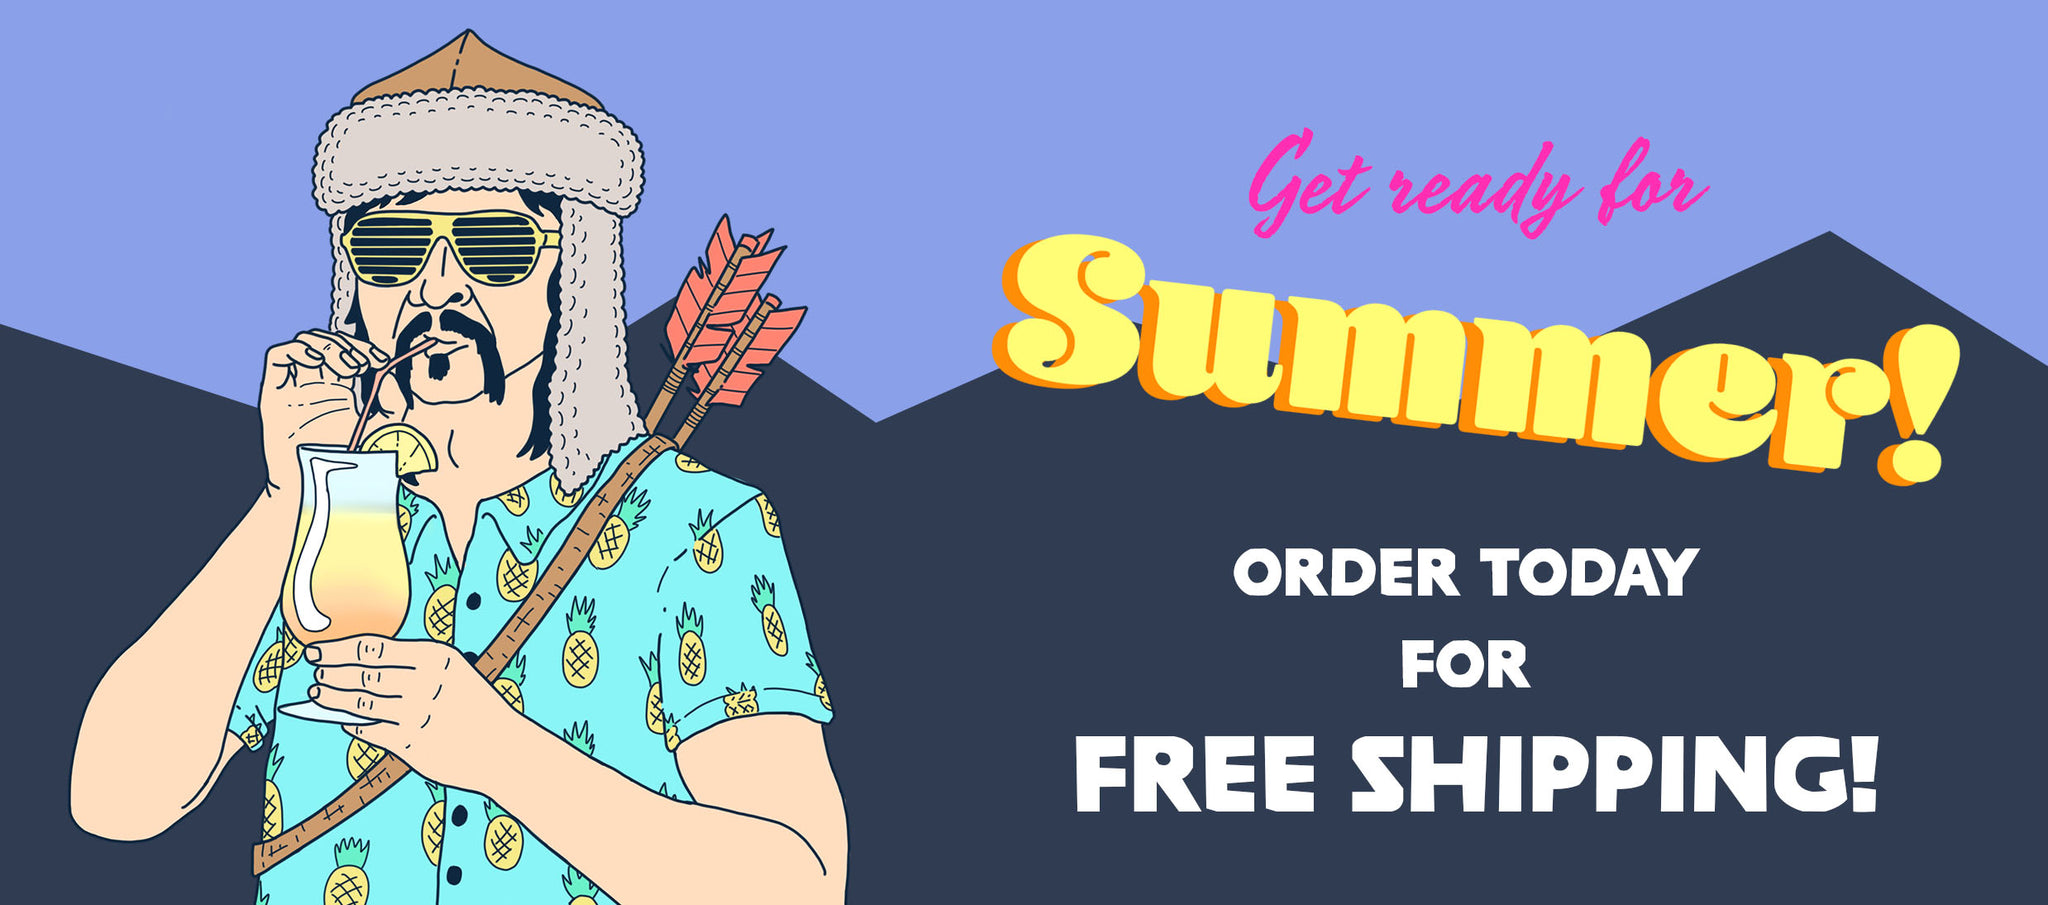 total dog shirt summer free shipping - sun's out, Hun's out